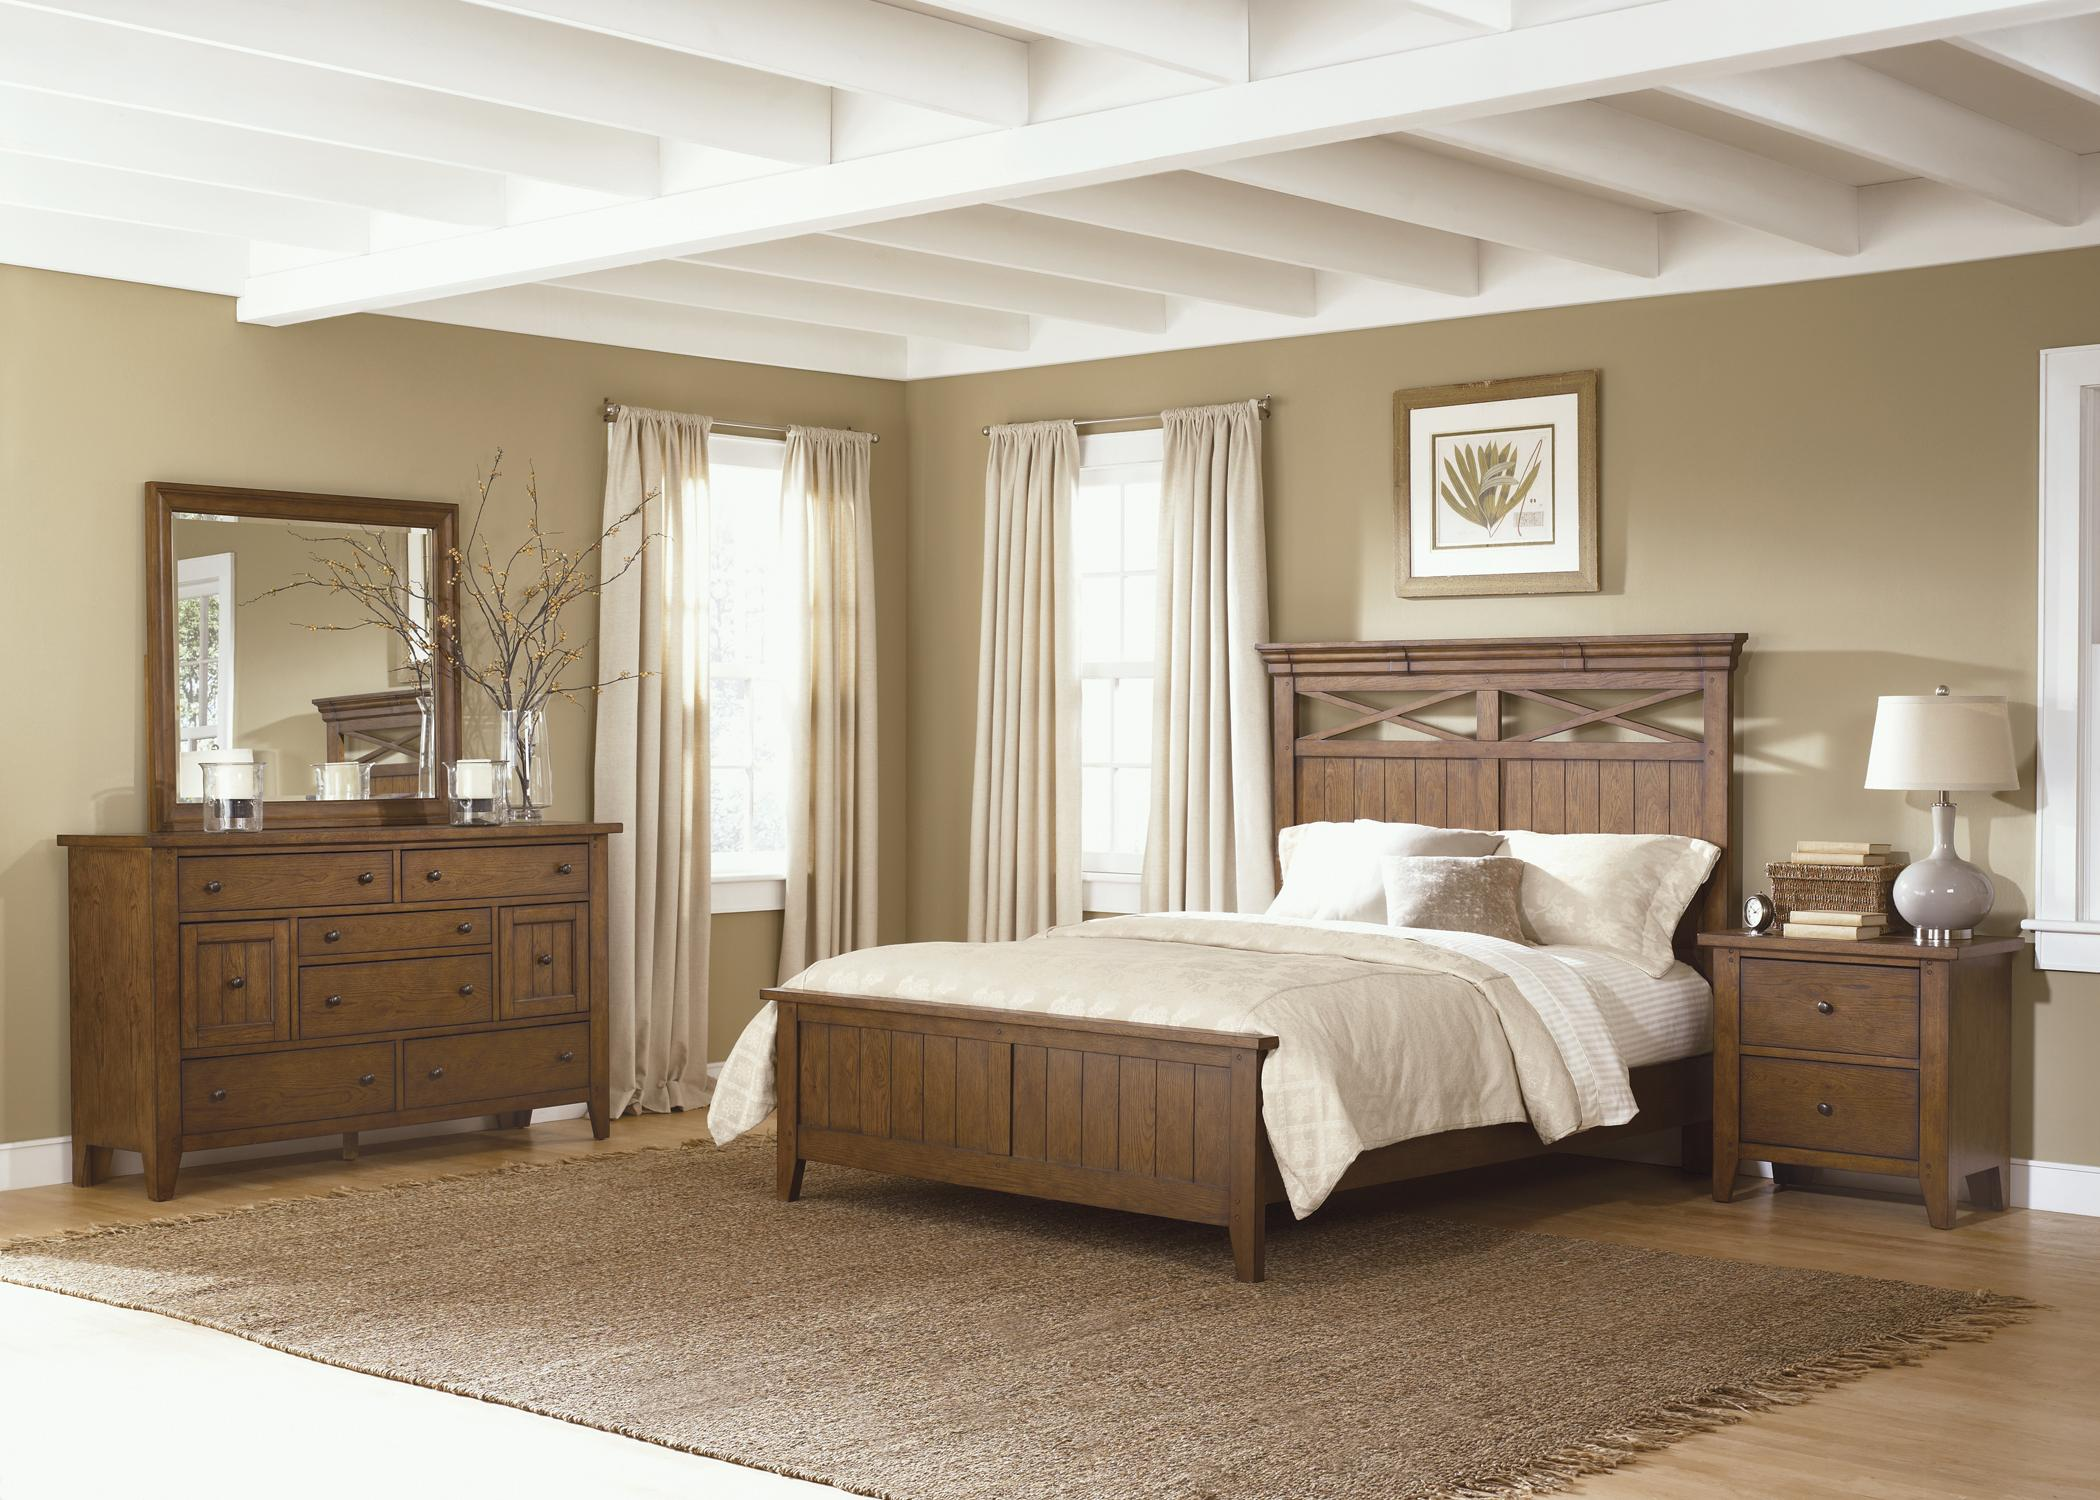 walnut outstanding storage headboard custommade culbertson designs queen design custom style mission by bed com